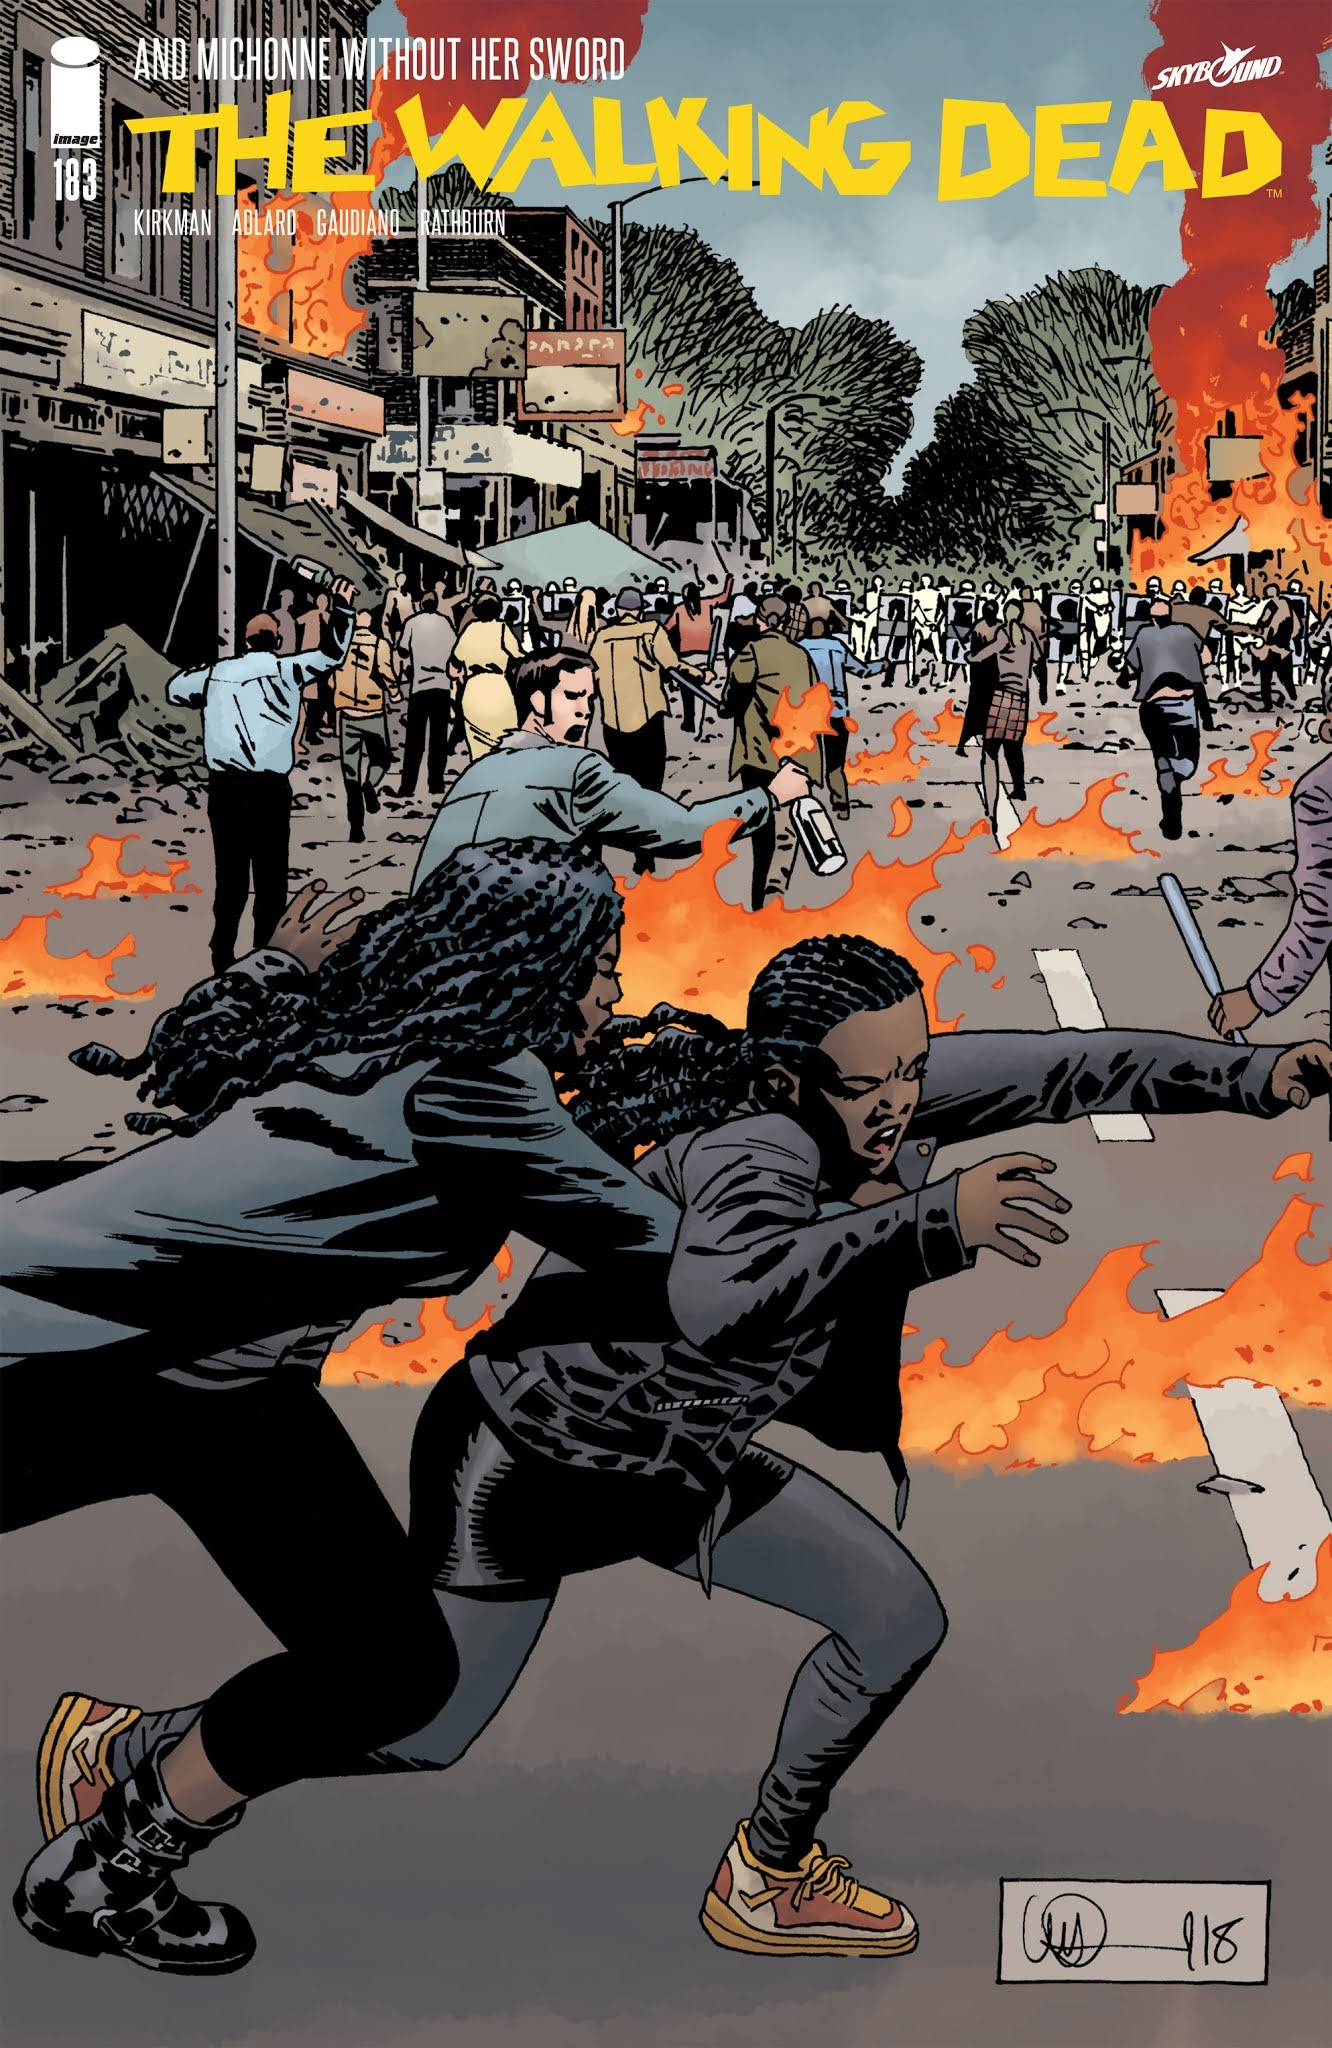 The Walking Dead 183 Page 1